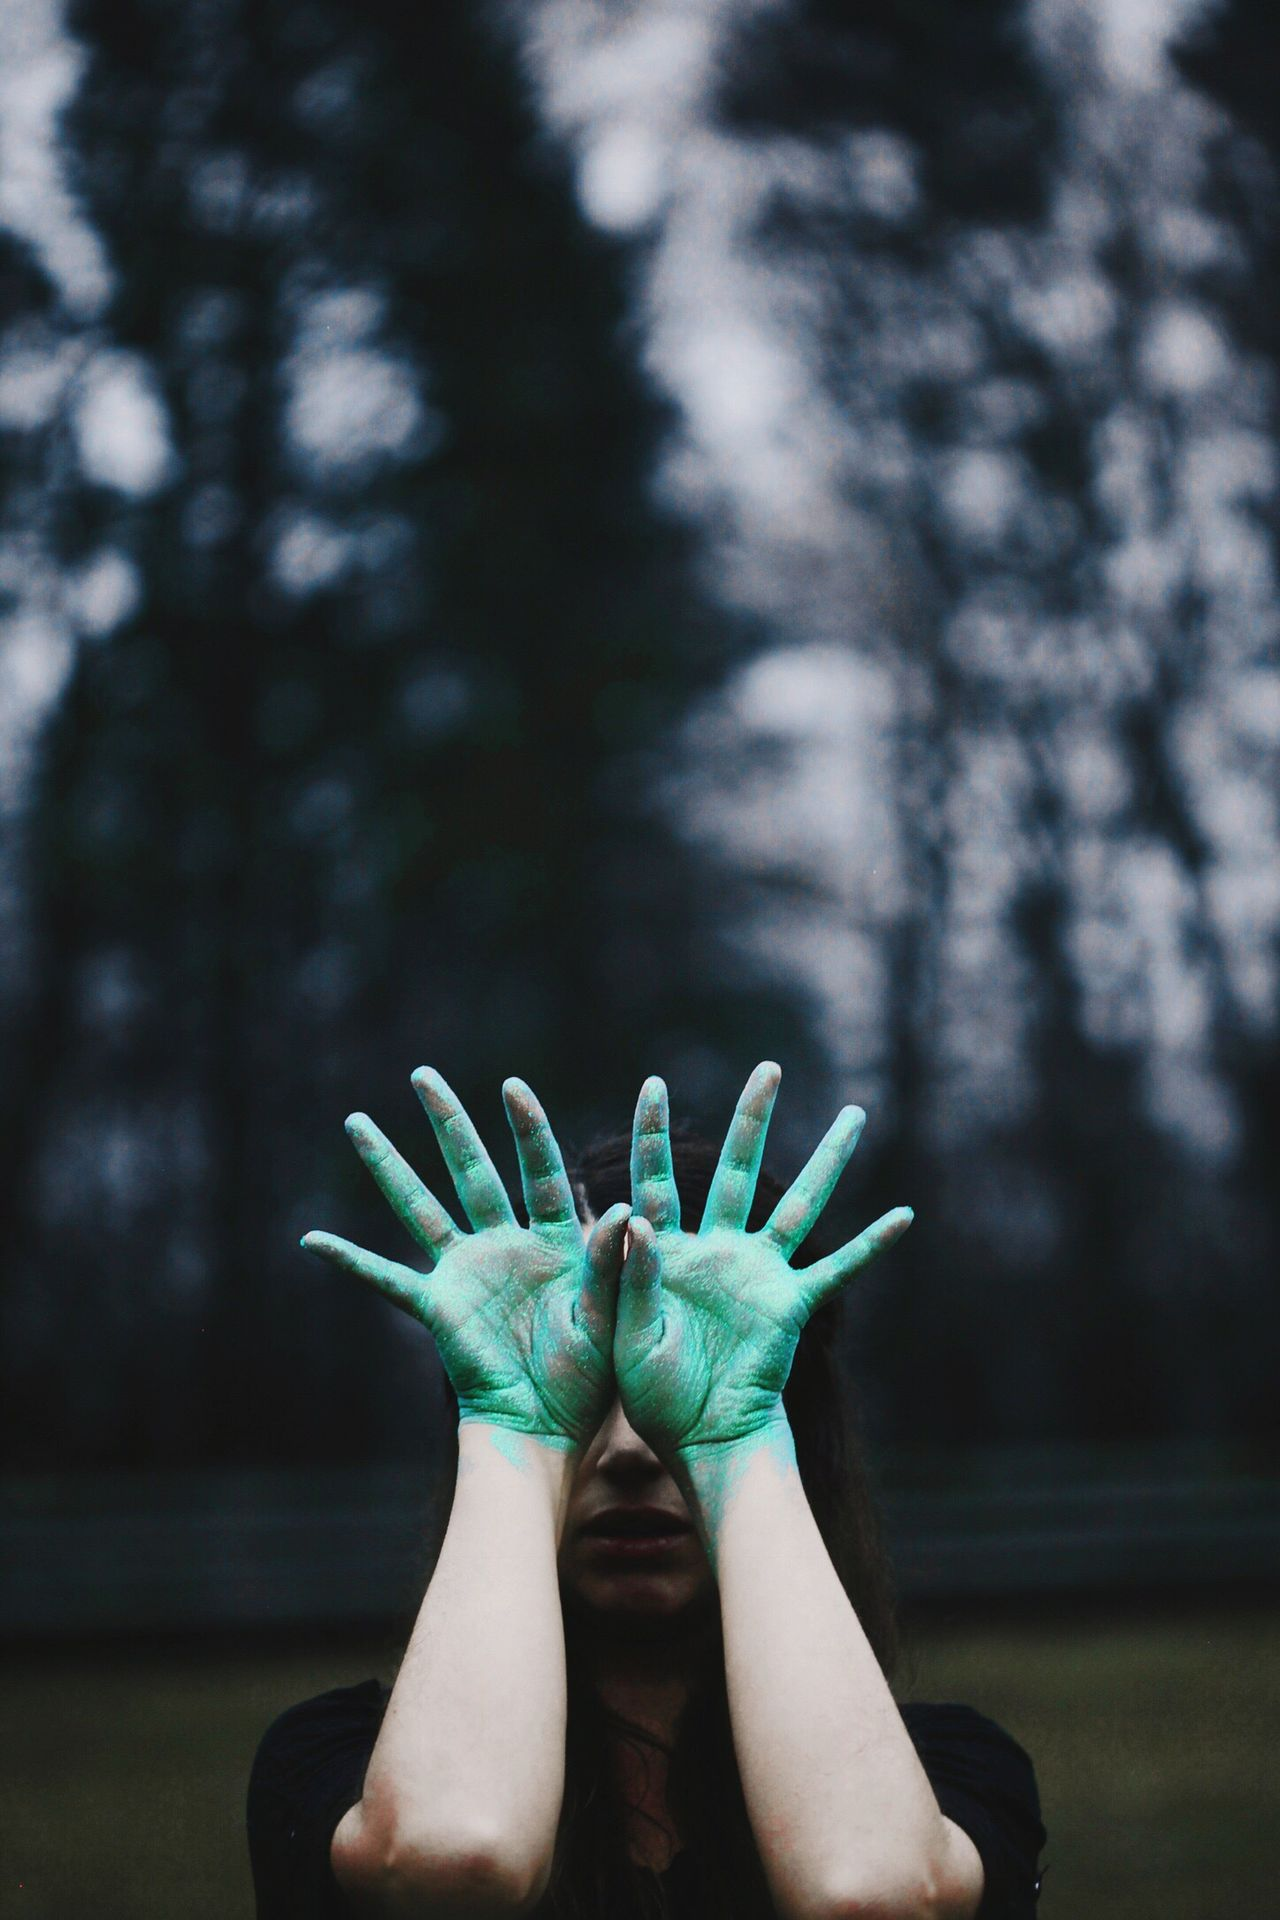 human hand Hands no face one person outdoors portrait Portrait of a Woman Fine Art Photography creative Dark sky forest Weird creepy EyeEmNewHere EyeEmNewHere.